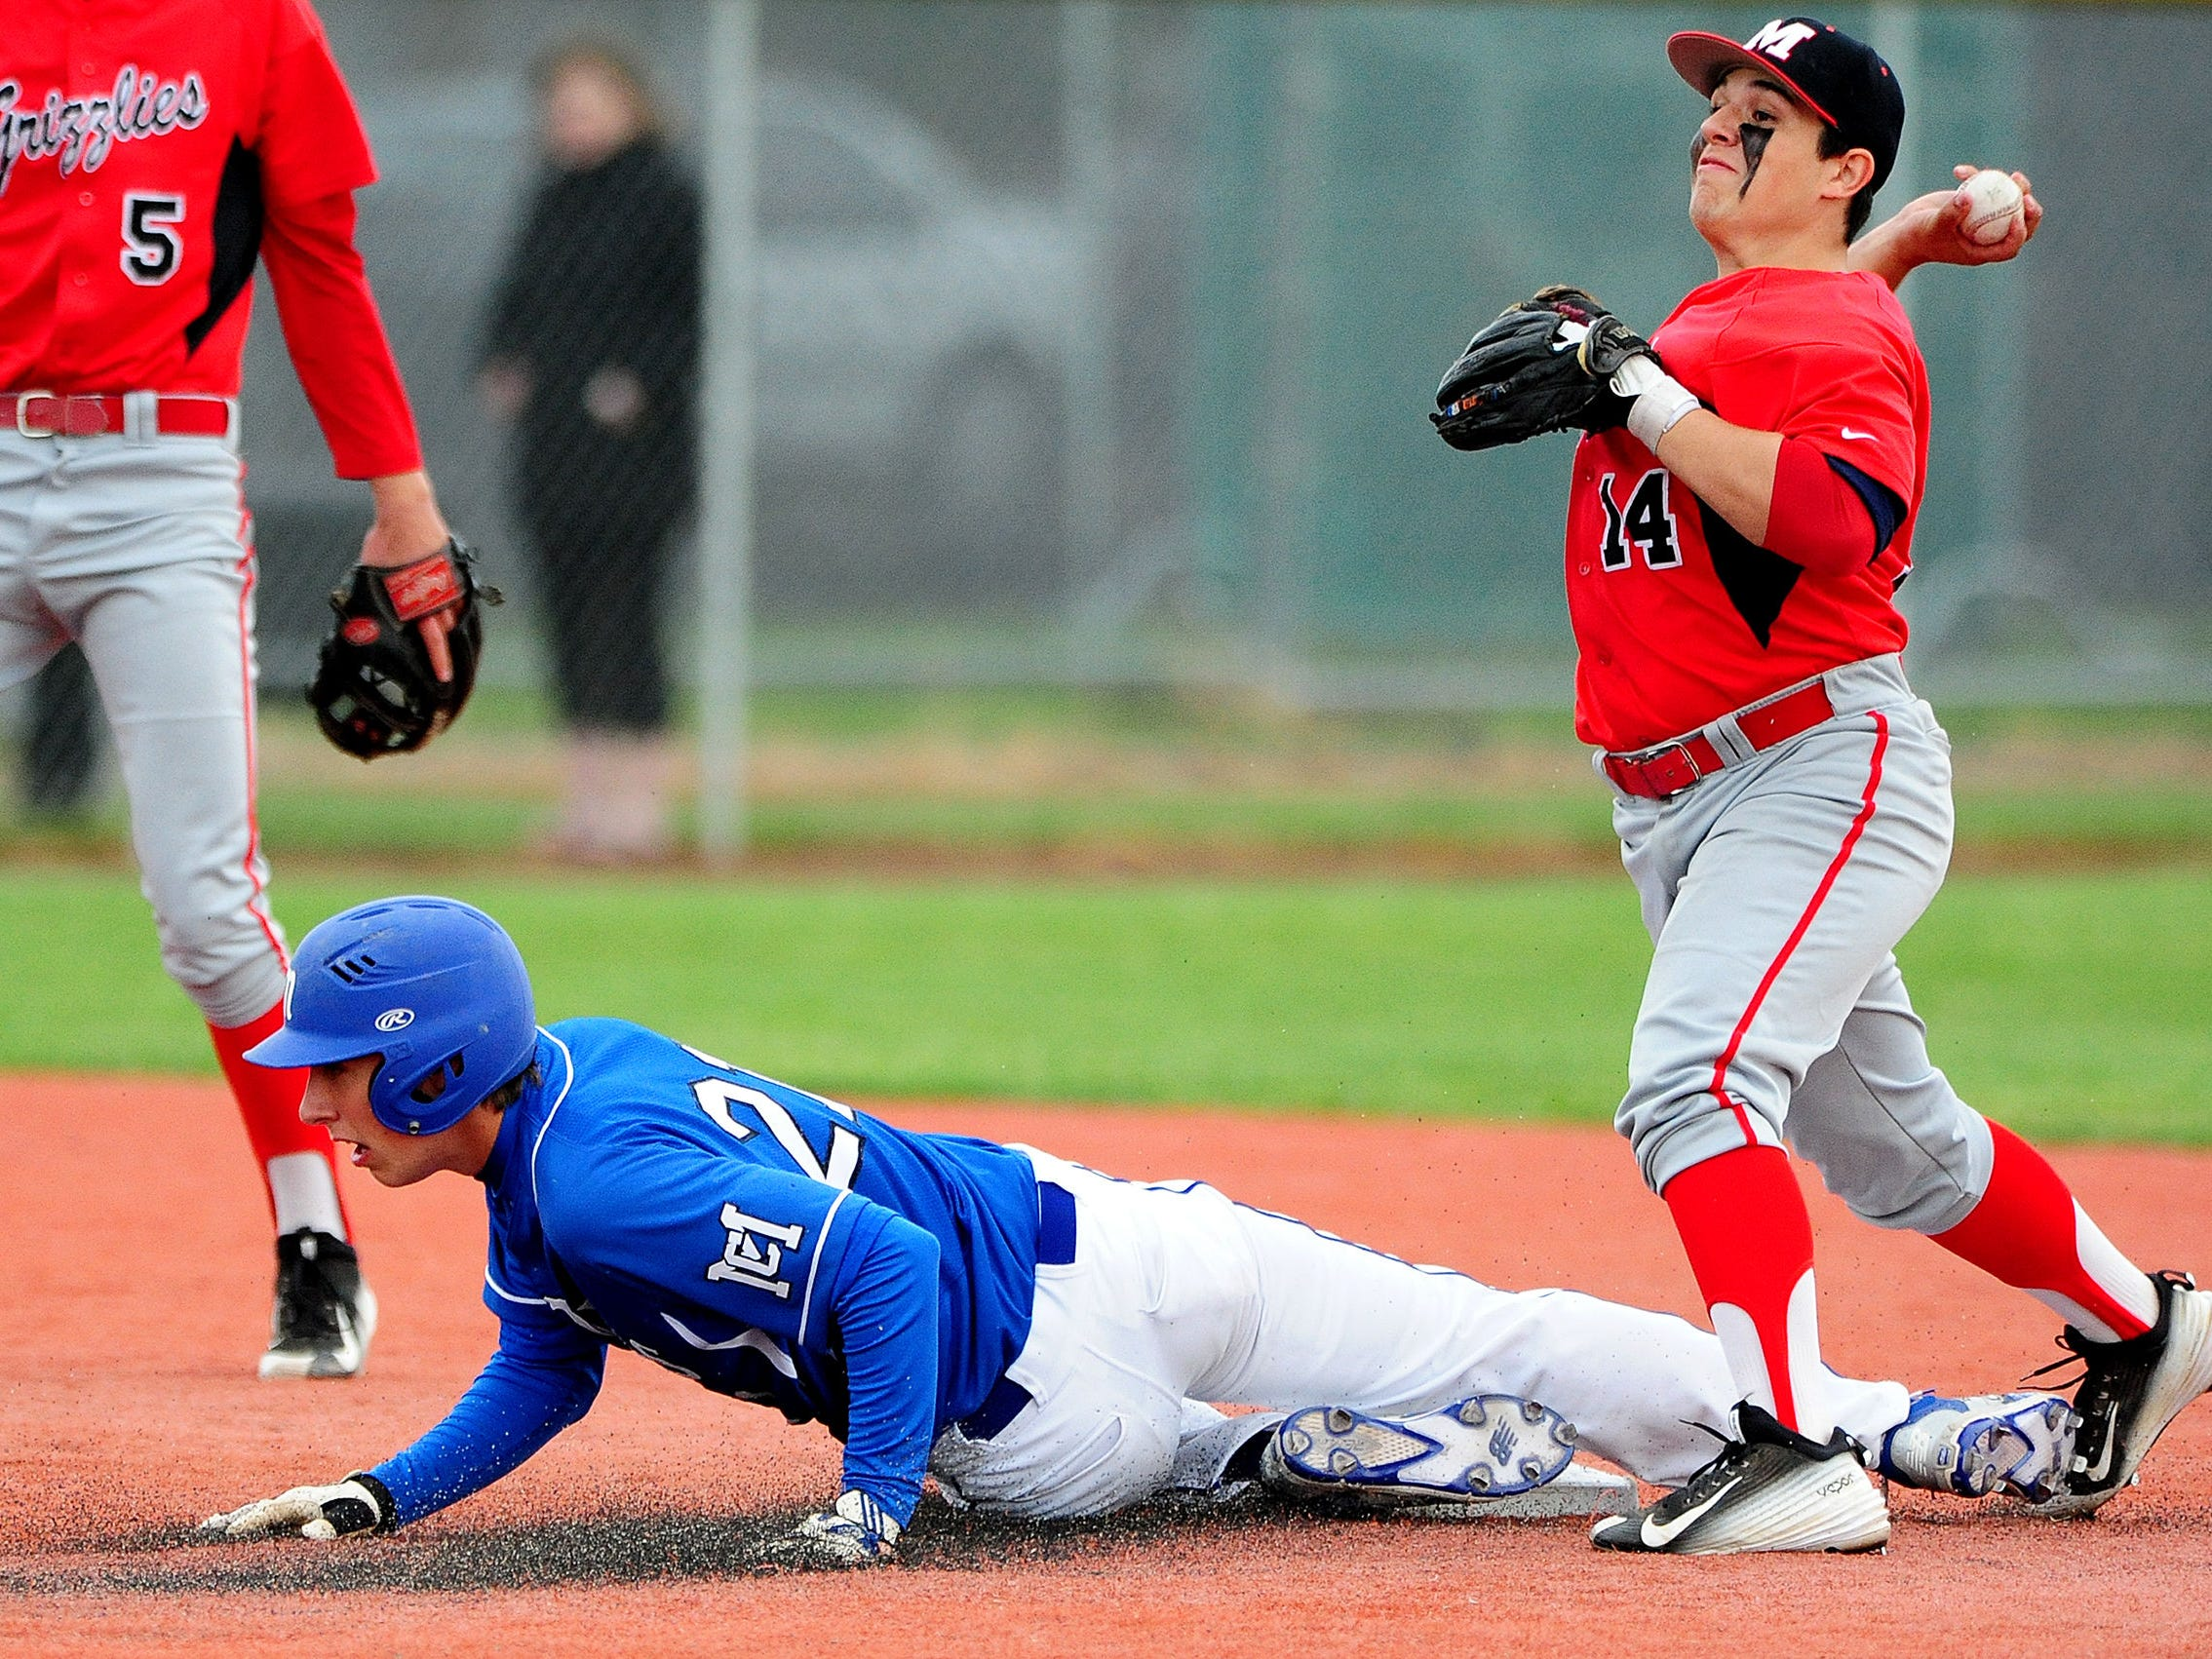 McNary's Matthew Ismay slides into second base as McMinnville's Kyle Casey throws to first base for a double play, on Wednesday, May 13, 2015, in McMinnville.